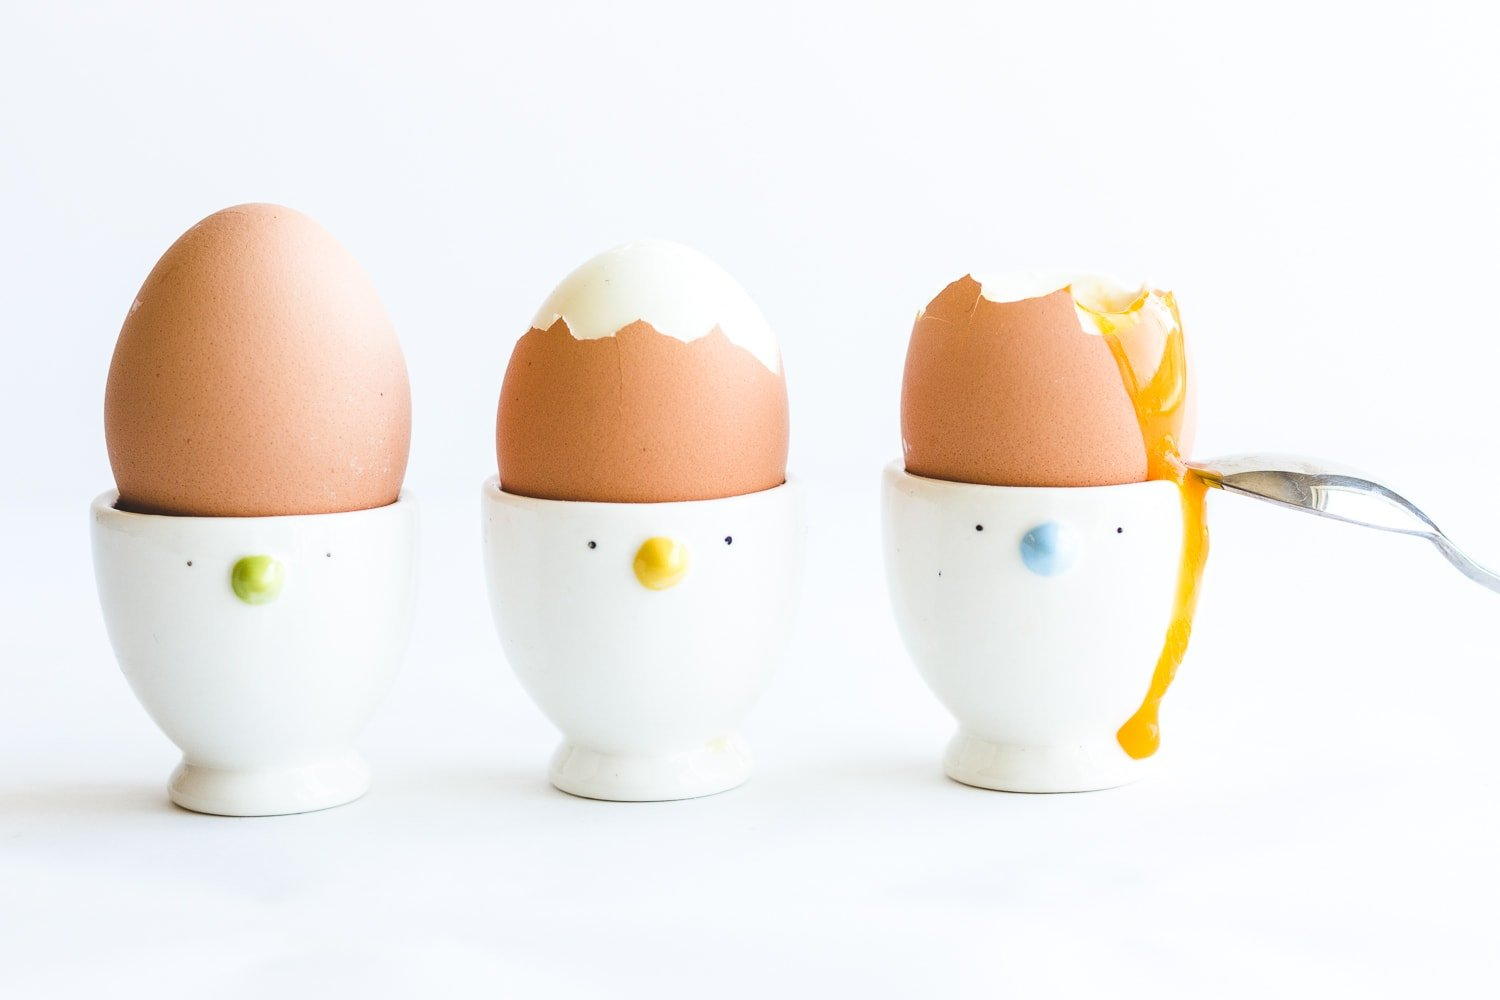 Three soft boiled eggs in egg cups with yolk running down the side of the last one and a spoon resting against it